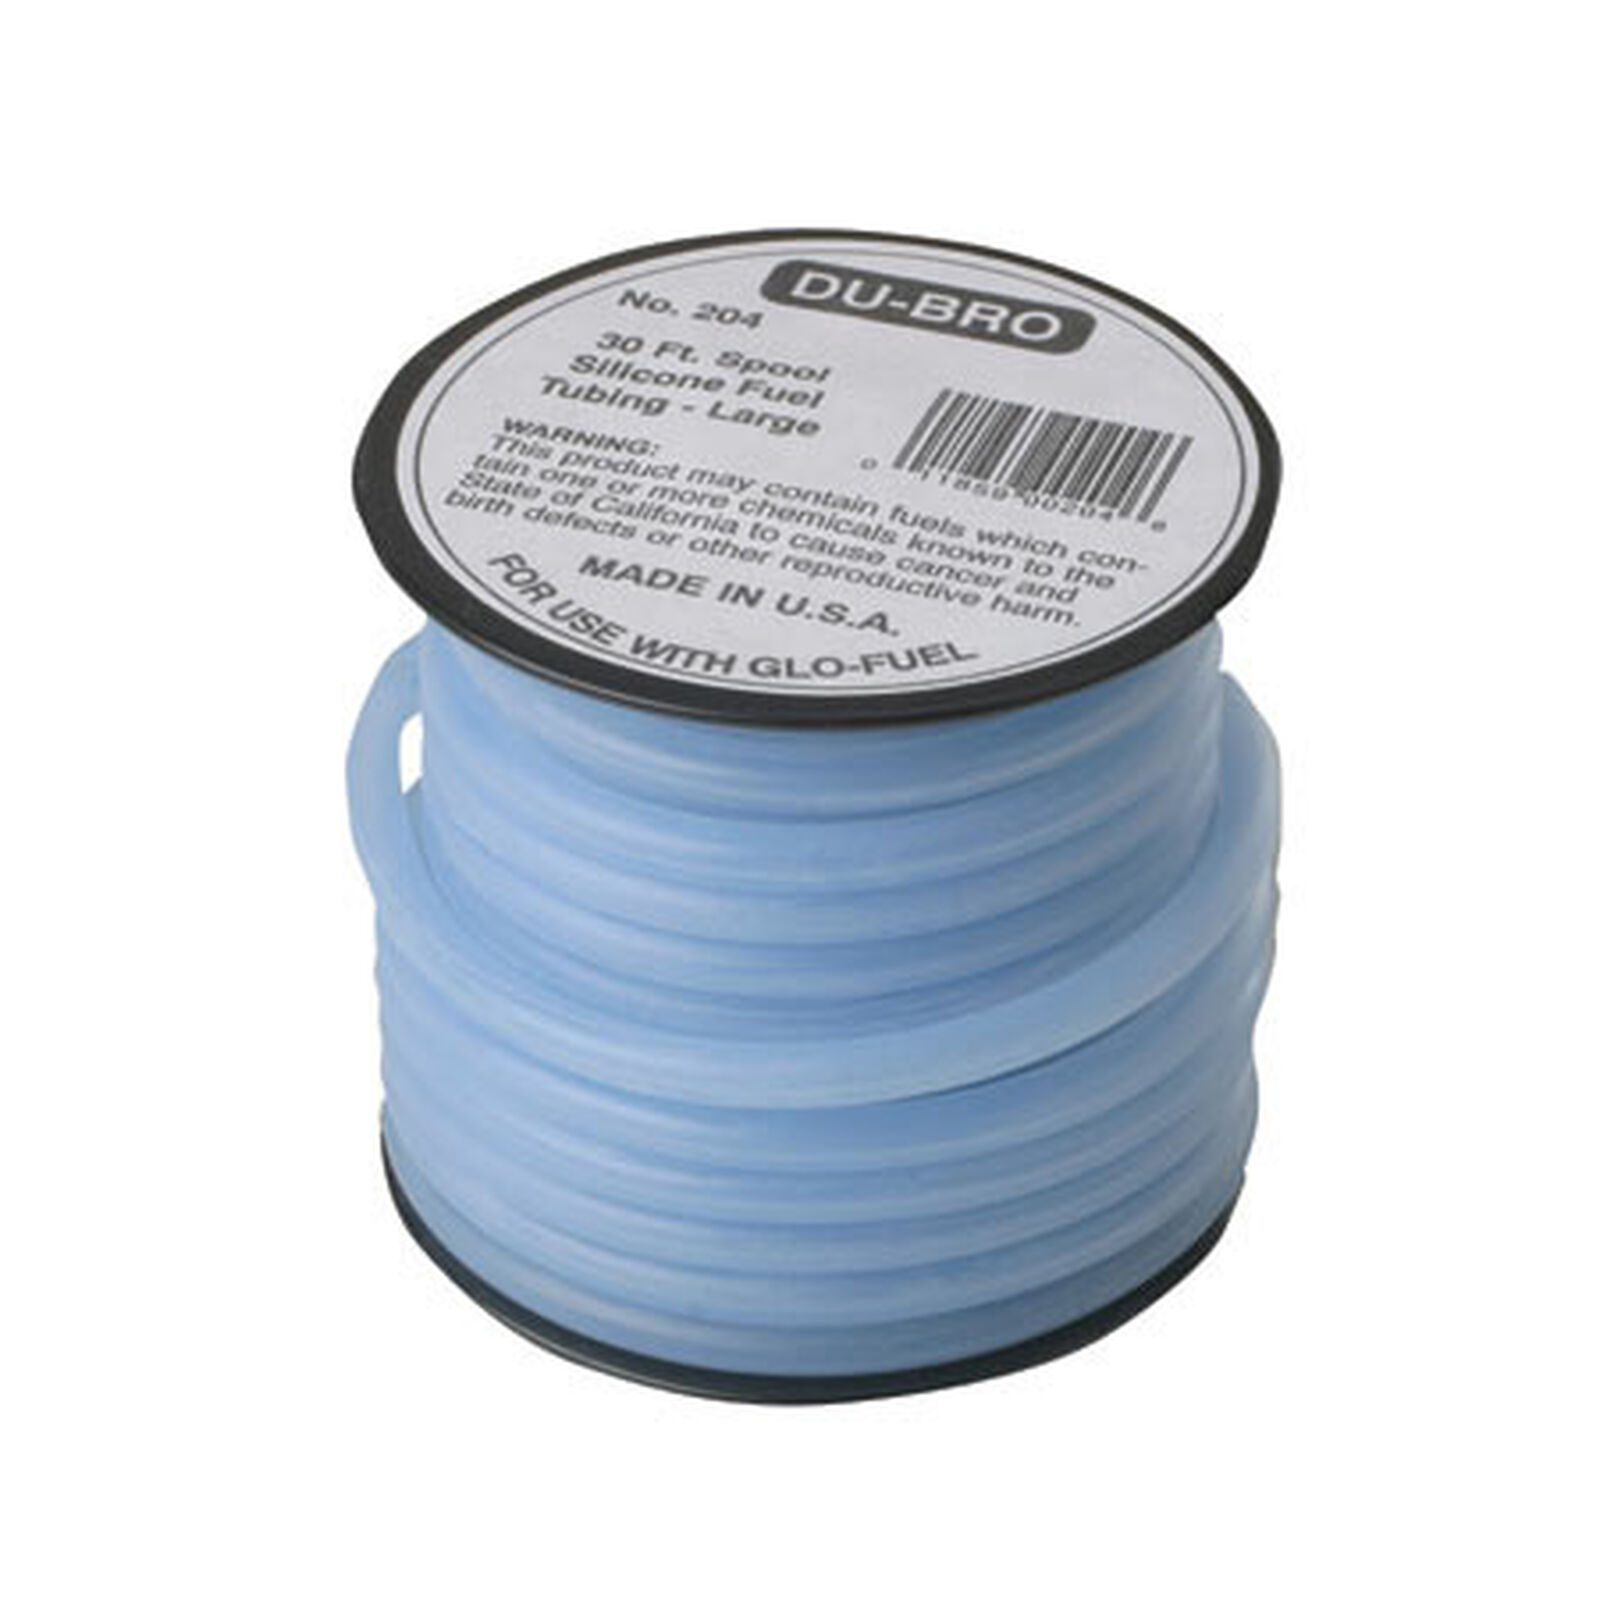 Silicone Fuel Tubing, Large, 30'